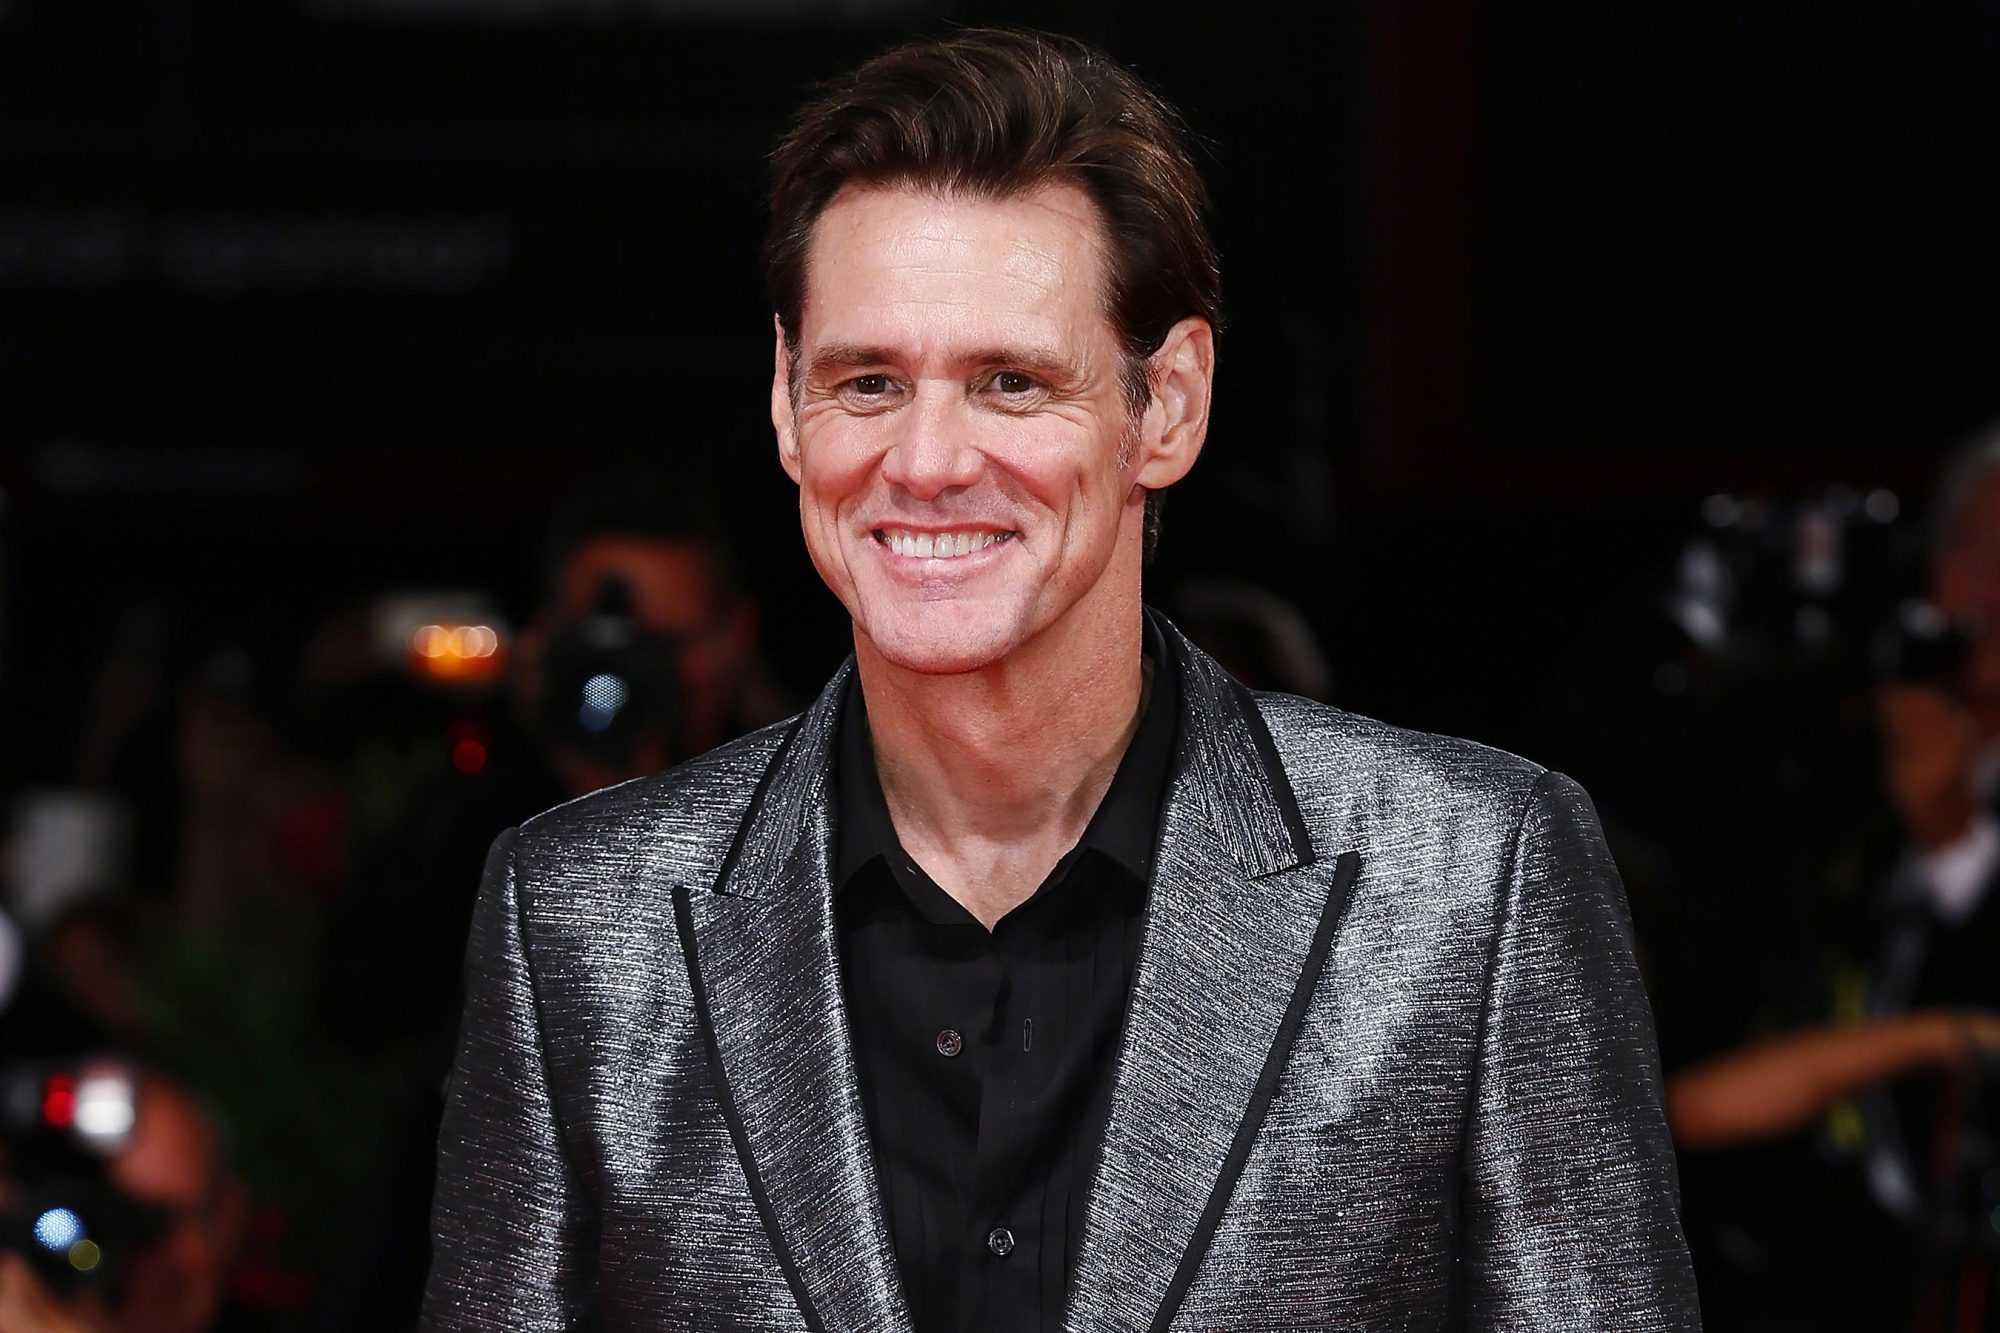 Jim & Andy: The Great Beyond - The Story of Jim Carrey & Andy Kaufman Featuring a Very Special, Contractually Obligated Mention of Tony Clifton Premiere - 74th Venice Film Festival